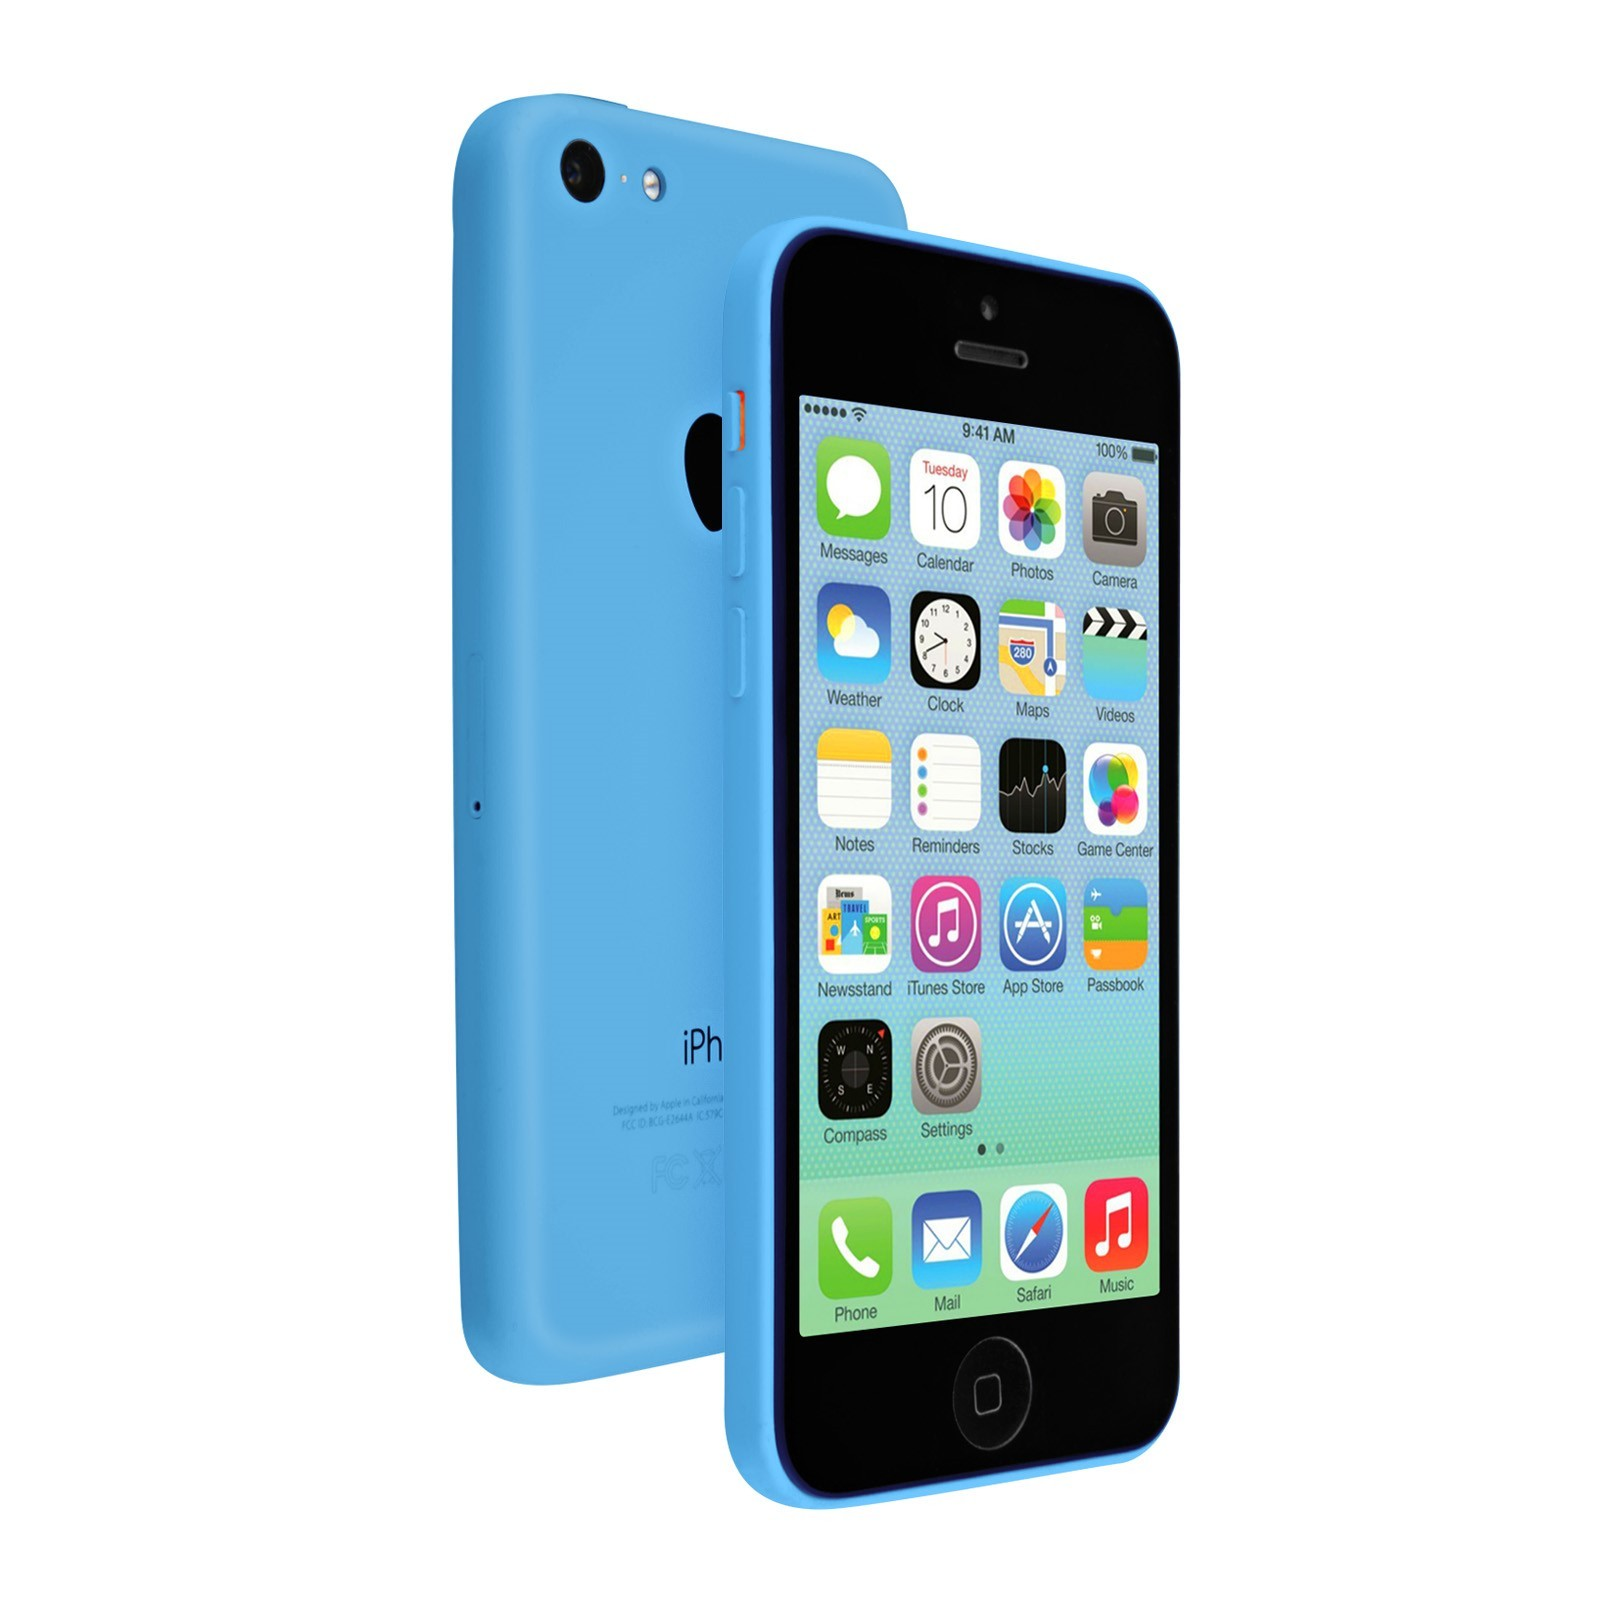 Found Deals For: TMOBILE IPHONE 5C. Trending Deals. Hot deal. 63% Off Exclusive Deals· Lowest Prices· Compare Prices· Best OffersTypes: Electronics, Toys, Fashion, Home Improvement, Power tools, Sports equipment.